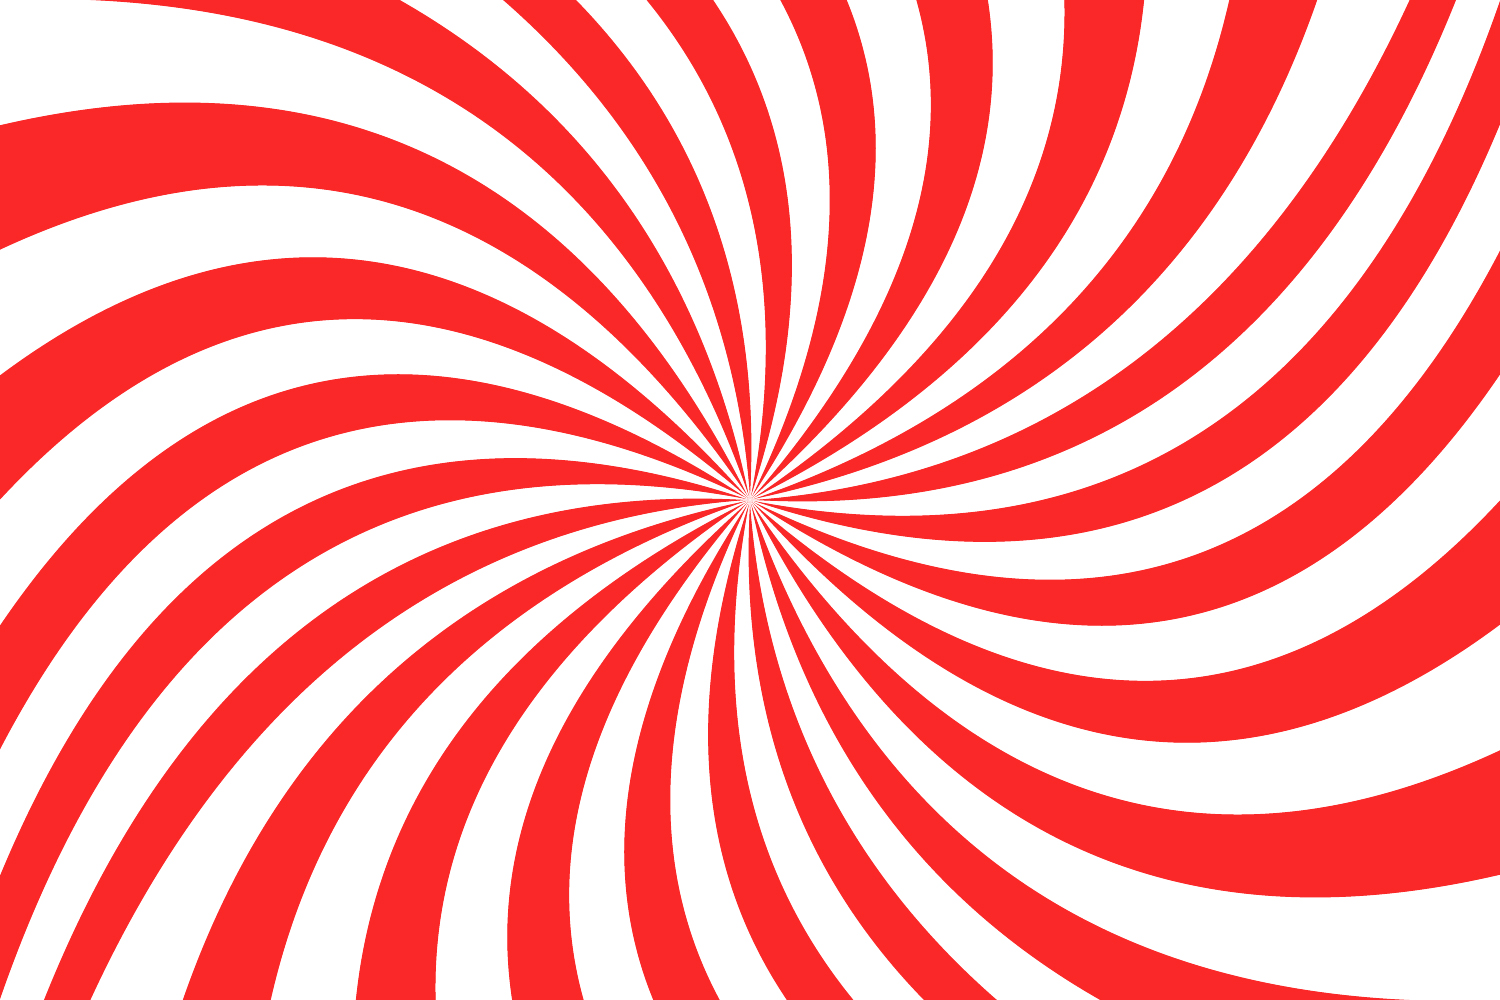 50 Spiral Backgrounds AI, EPS, JPG 5000x5000 example image 4